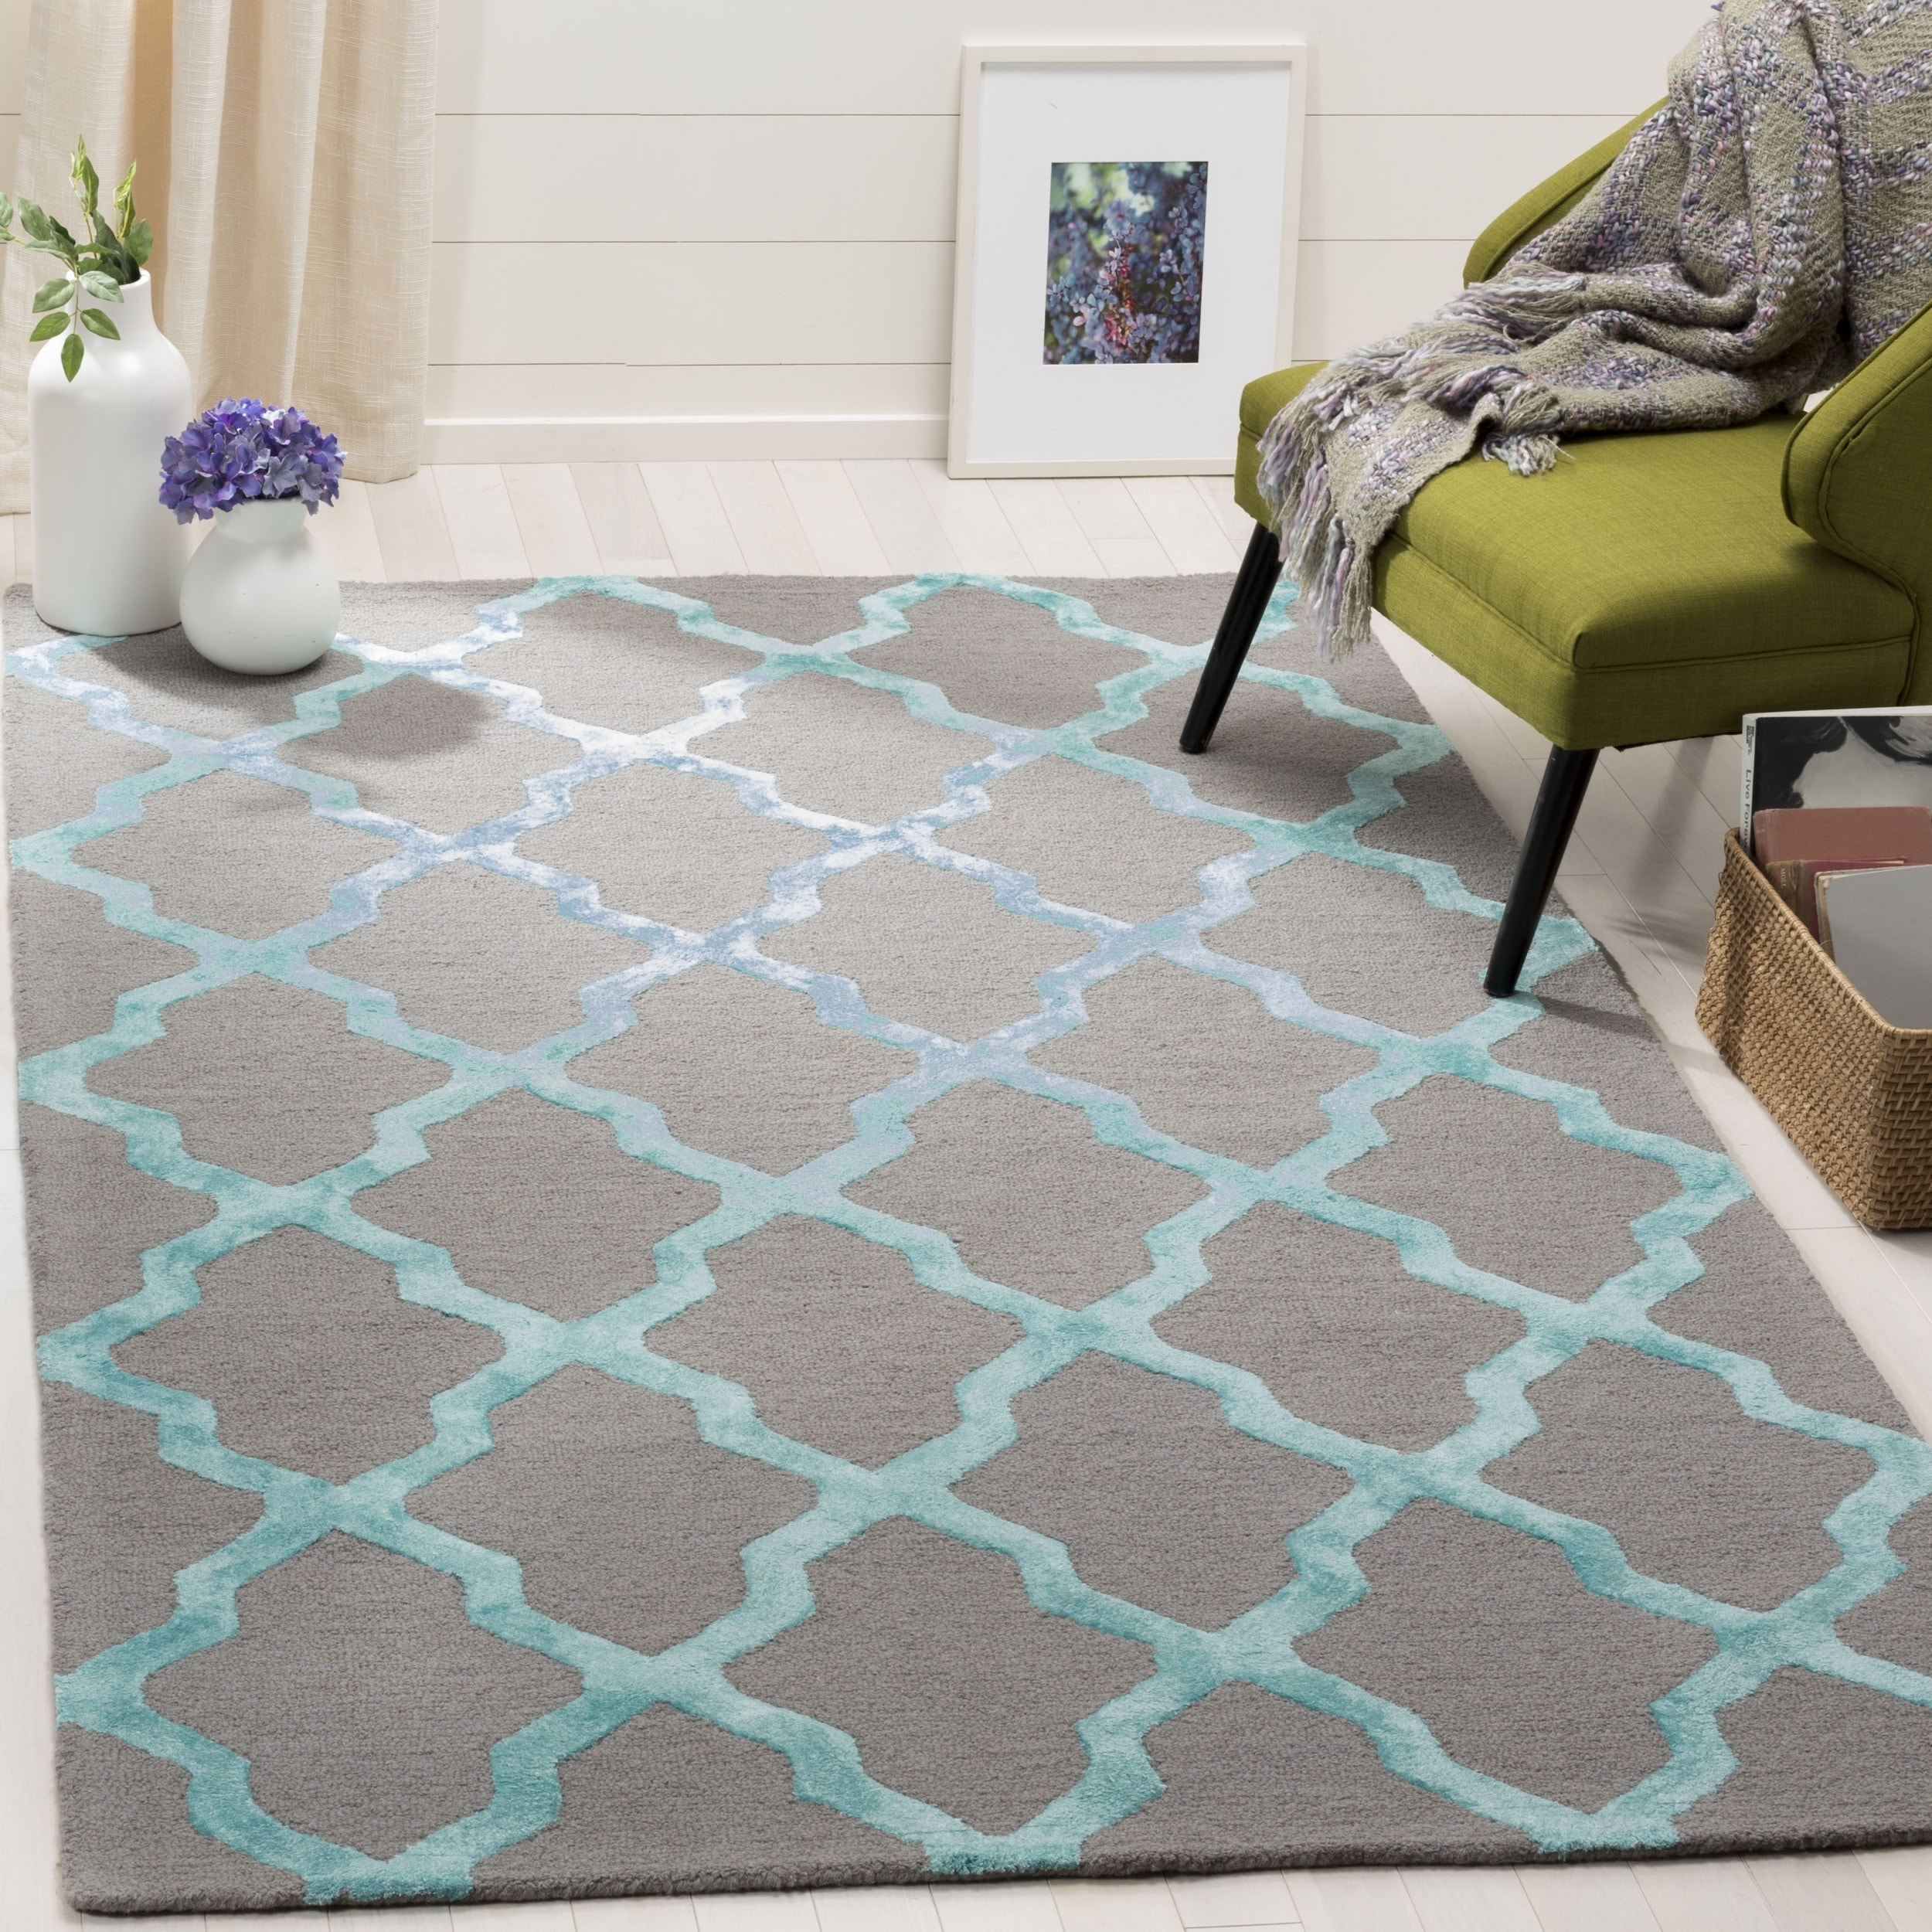 Gray Wool Rug 8x10 Area Ideas Turquoise Rugs 8 10